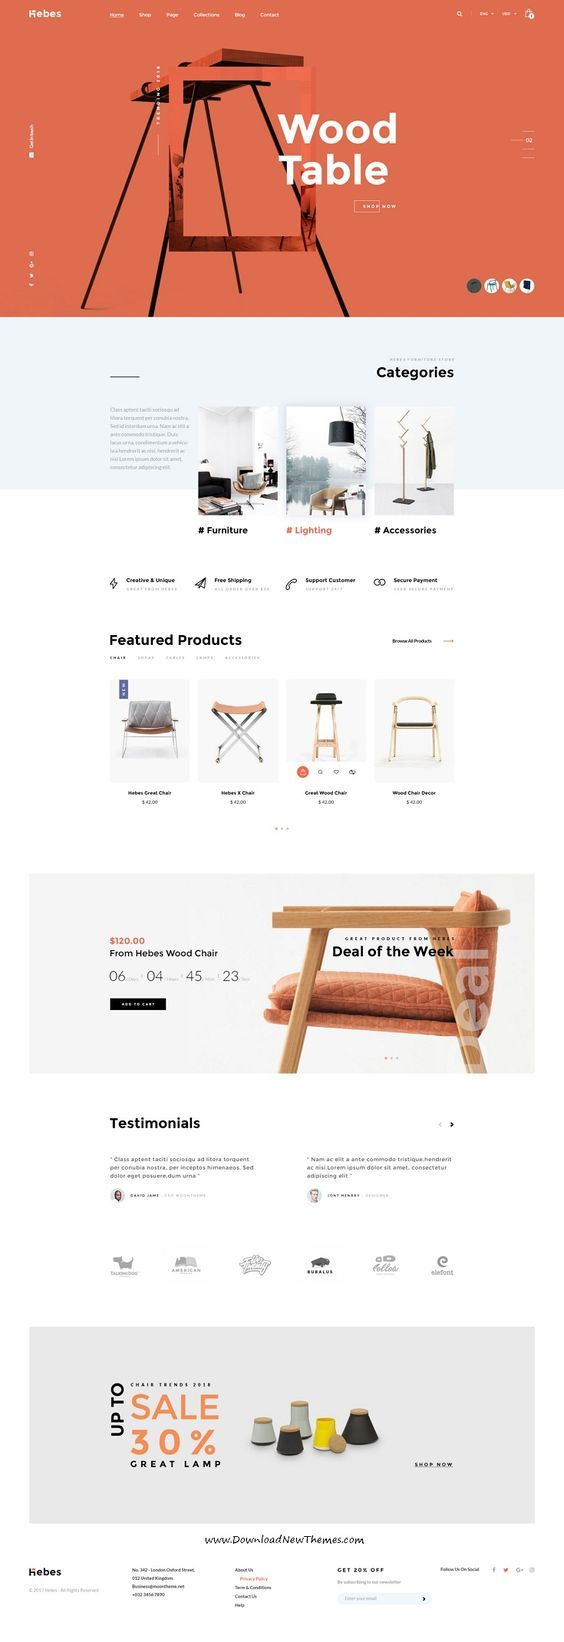 This Is Our Daily Web App Design Inspiration Article For Our Loyal Readers Every Day We Are Showcasing A W Web Layout Design App Design Inspiration Web Design